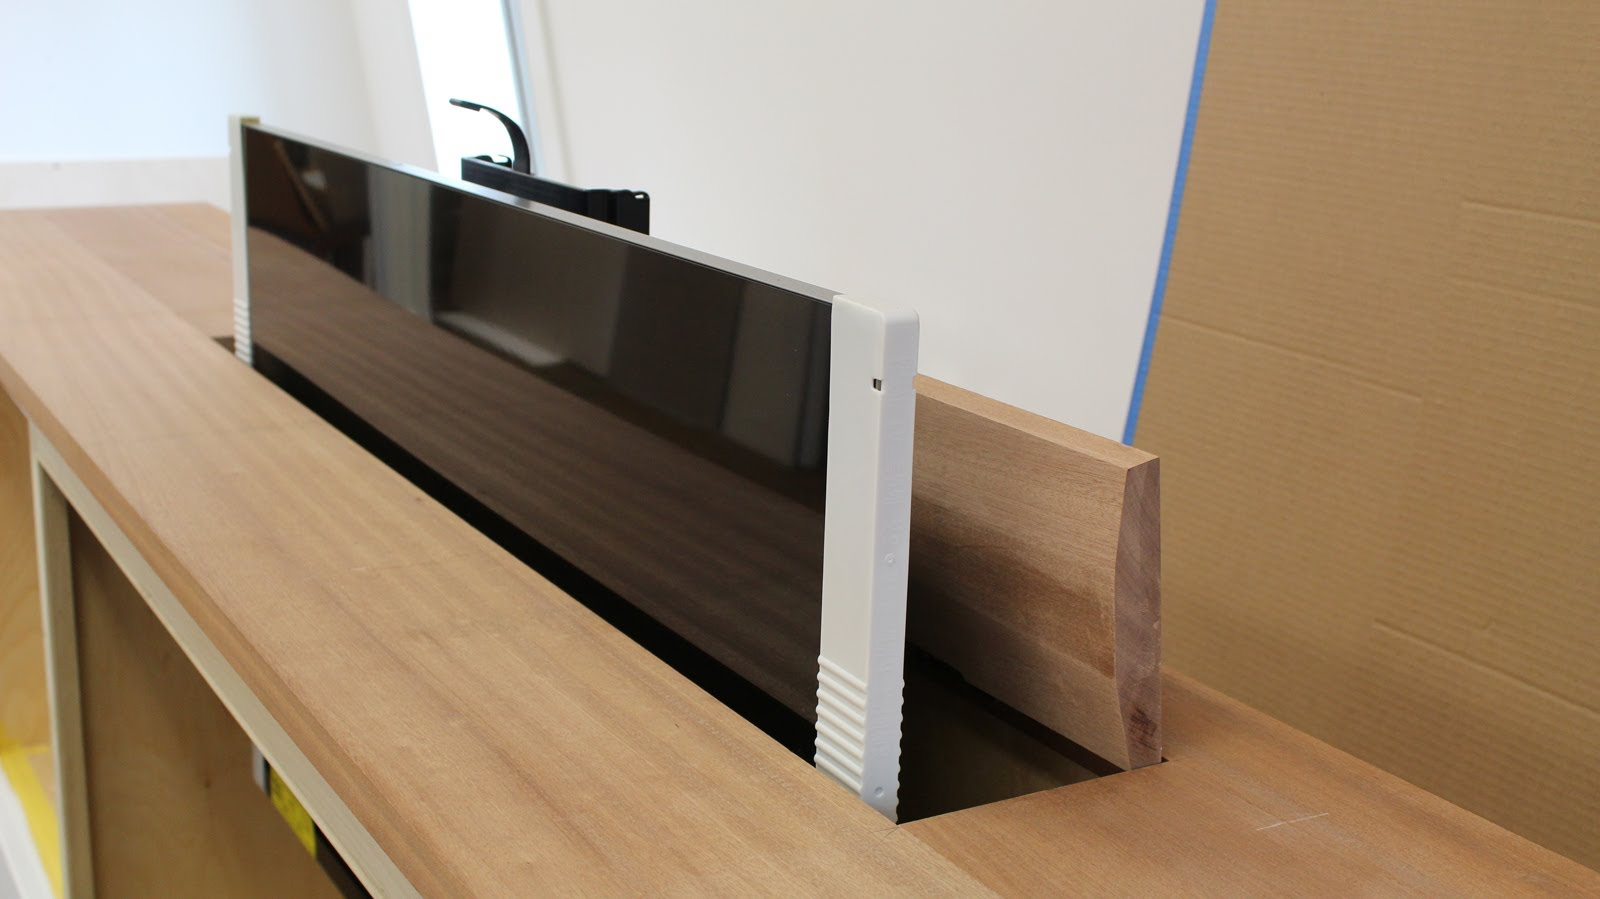 ... DIY Diy Tv Lift Cabinet Plans Download diy platform bed – woodguides